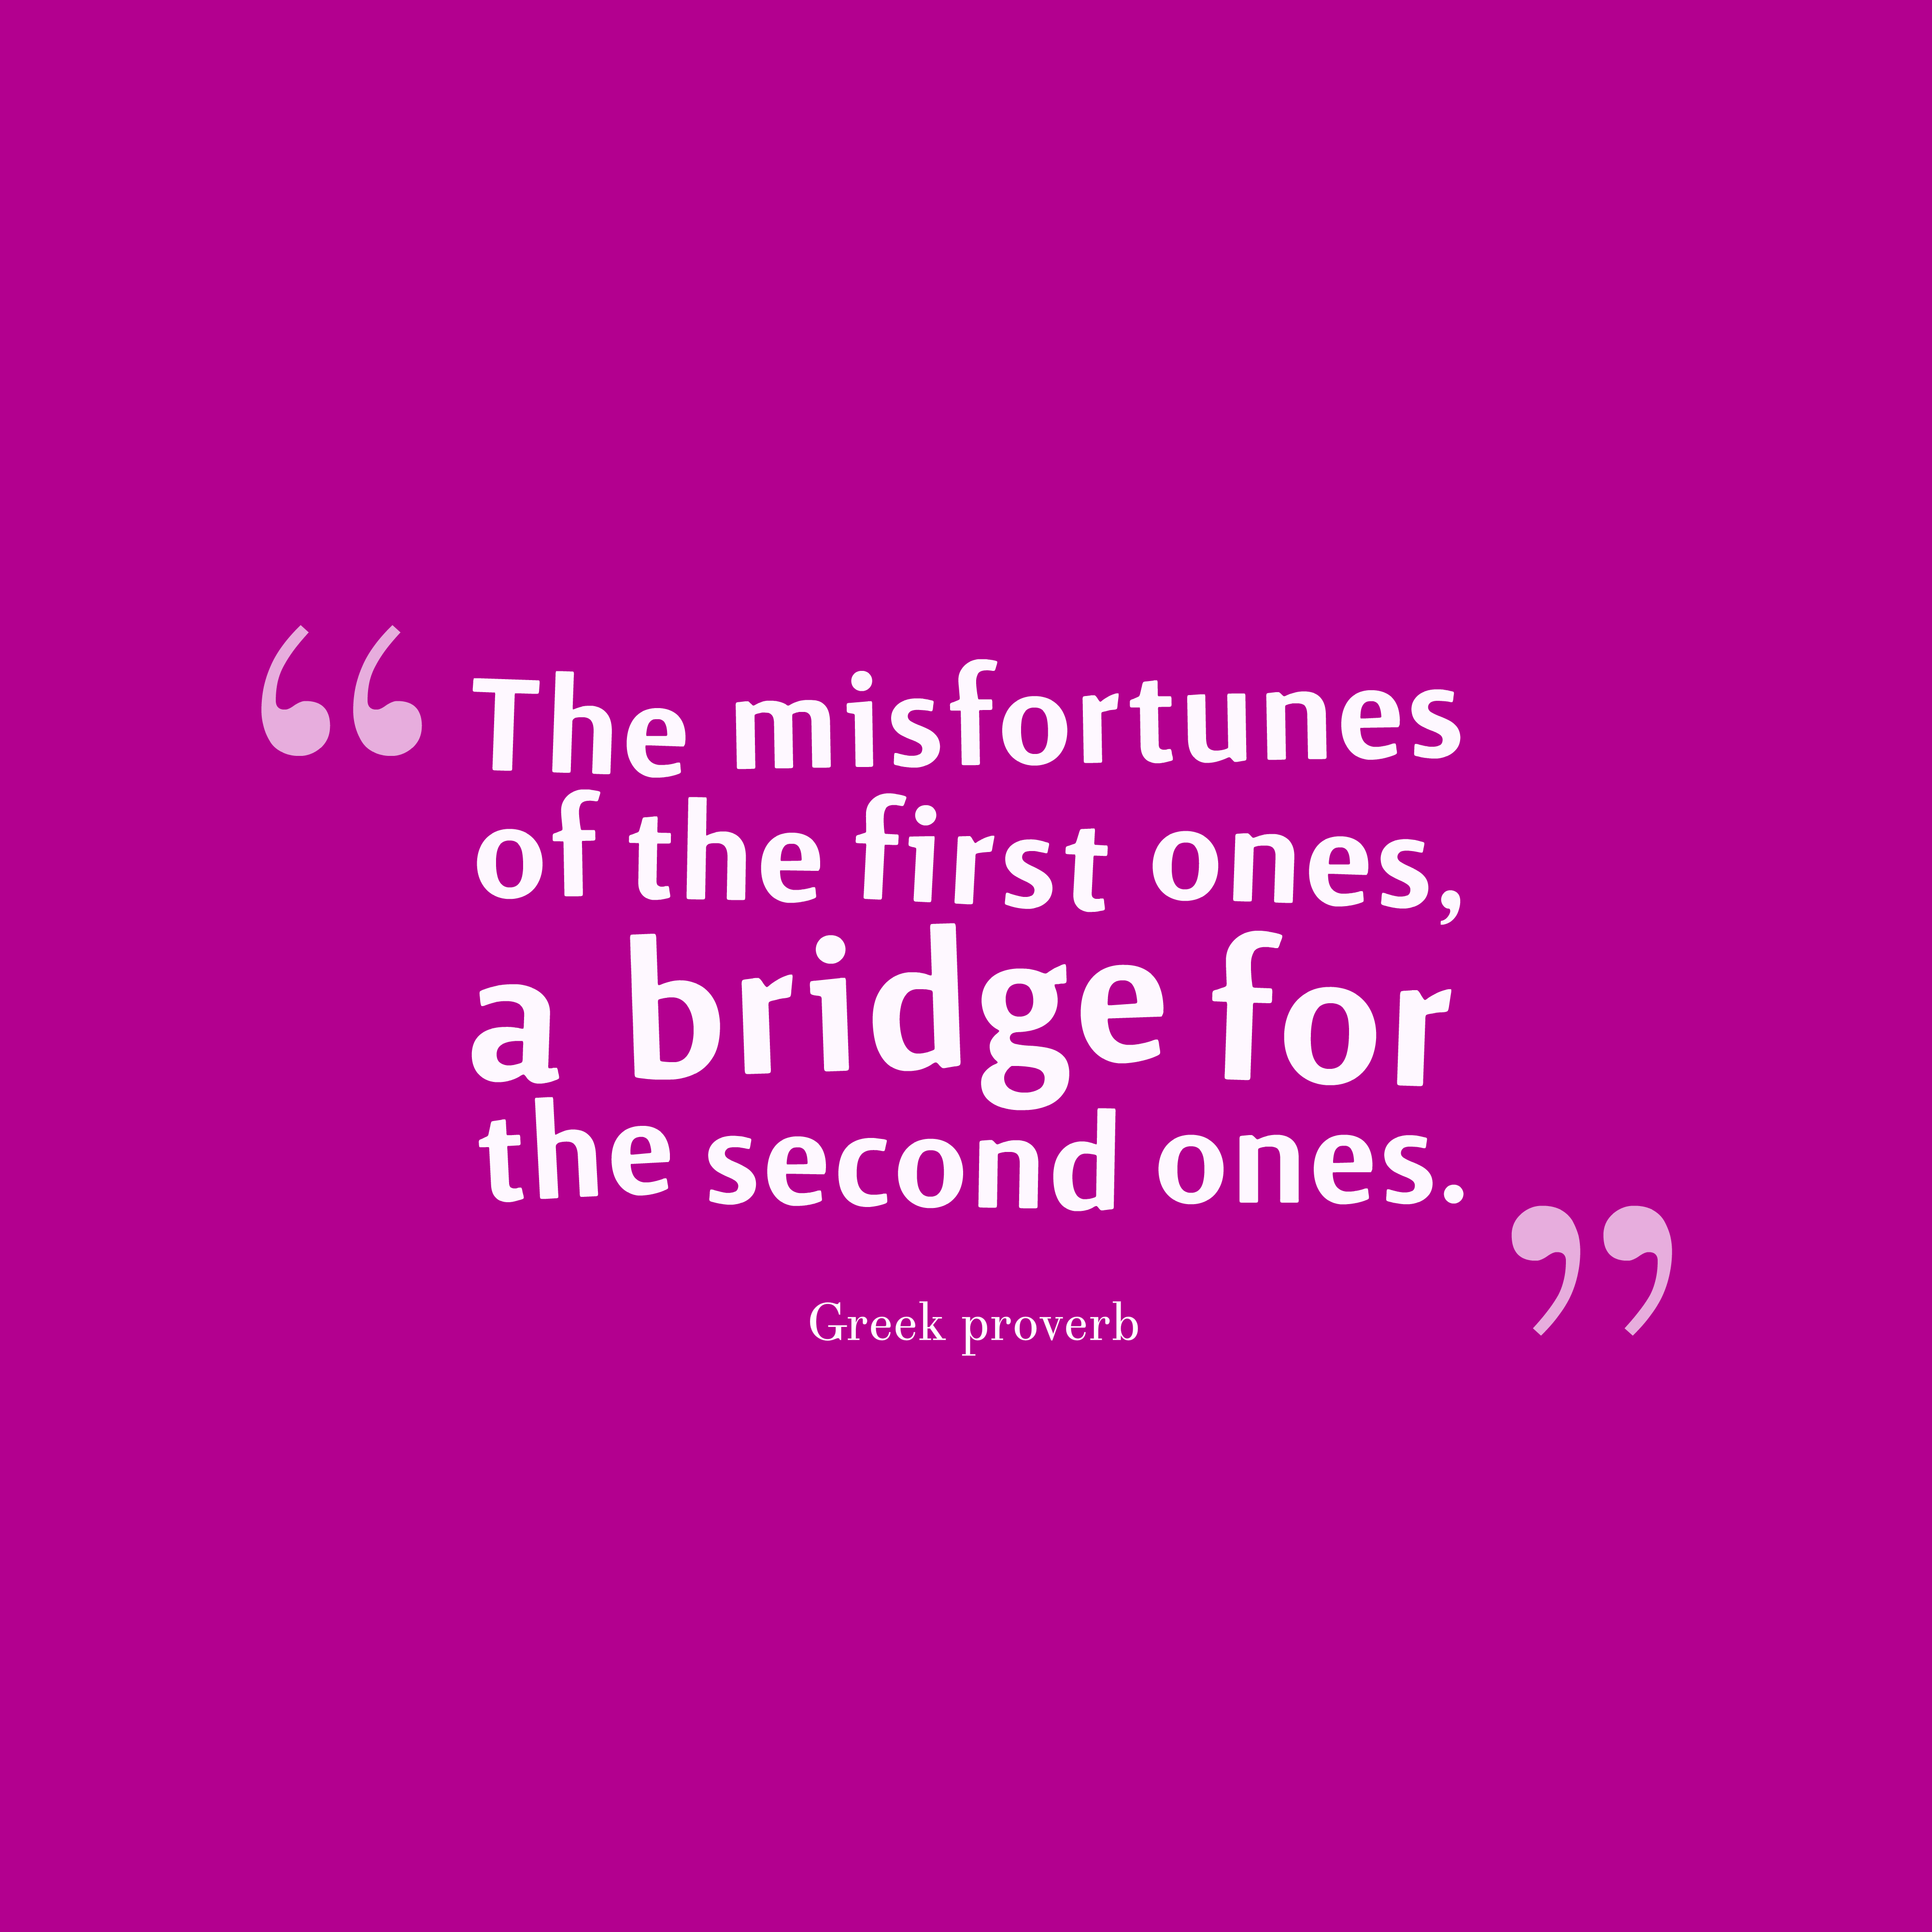 Quotes image of The misfortunes of the first ones, a bridge for the second ones.